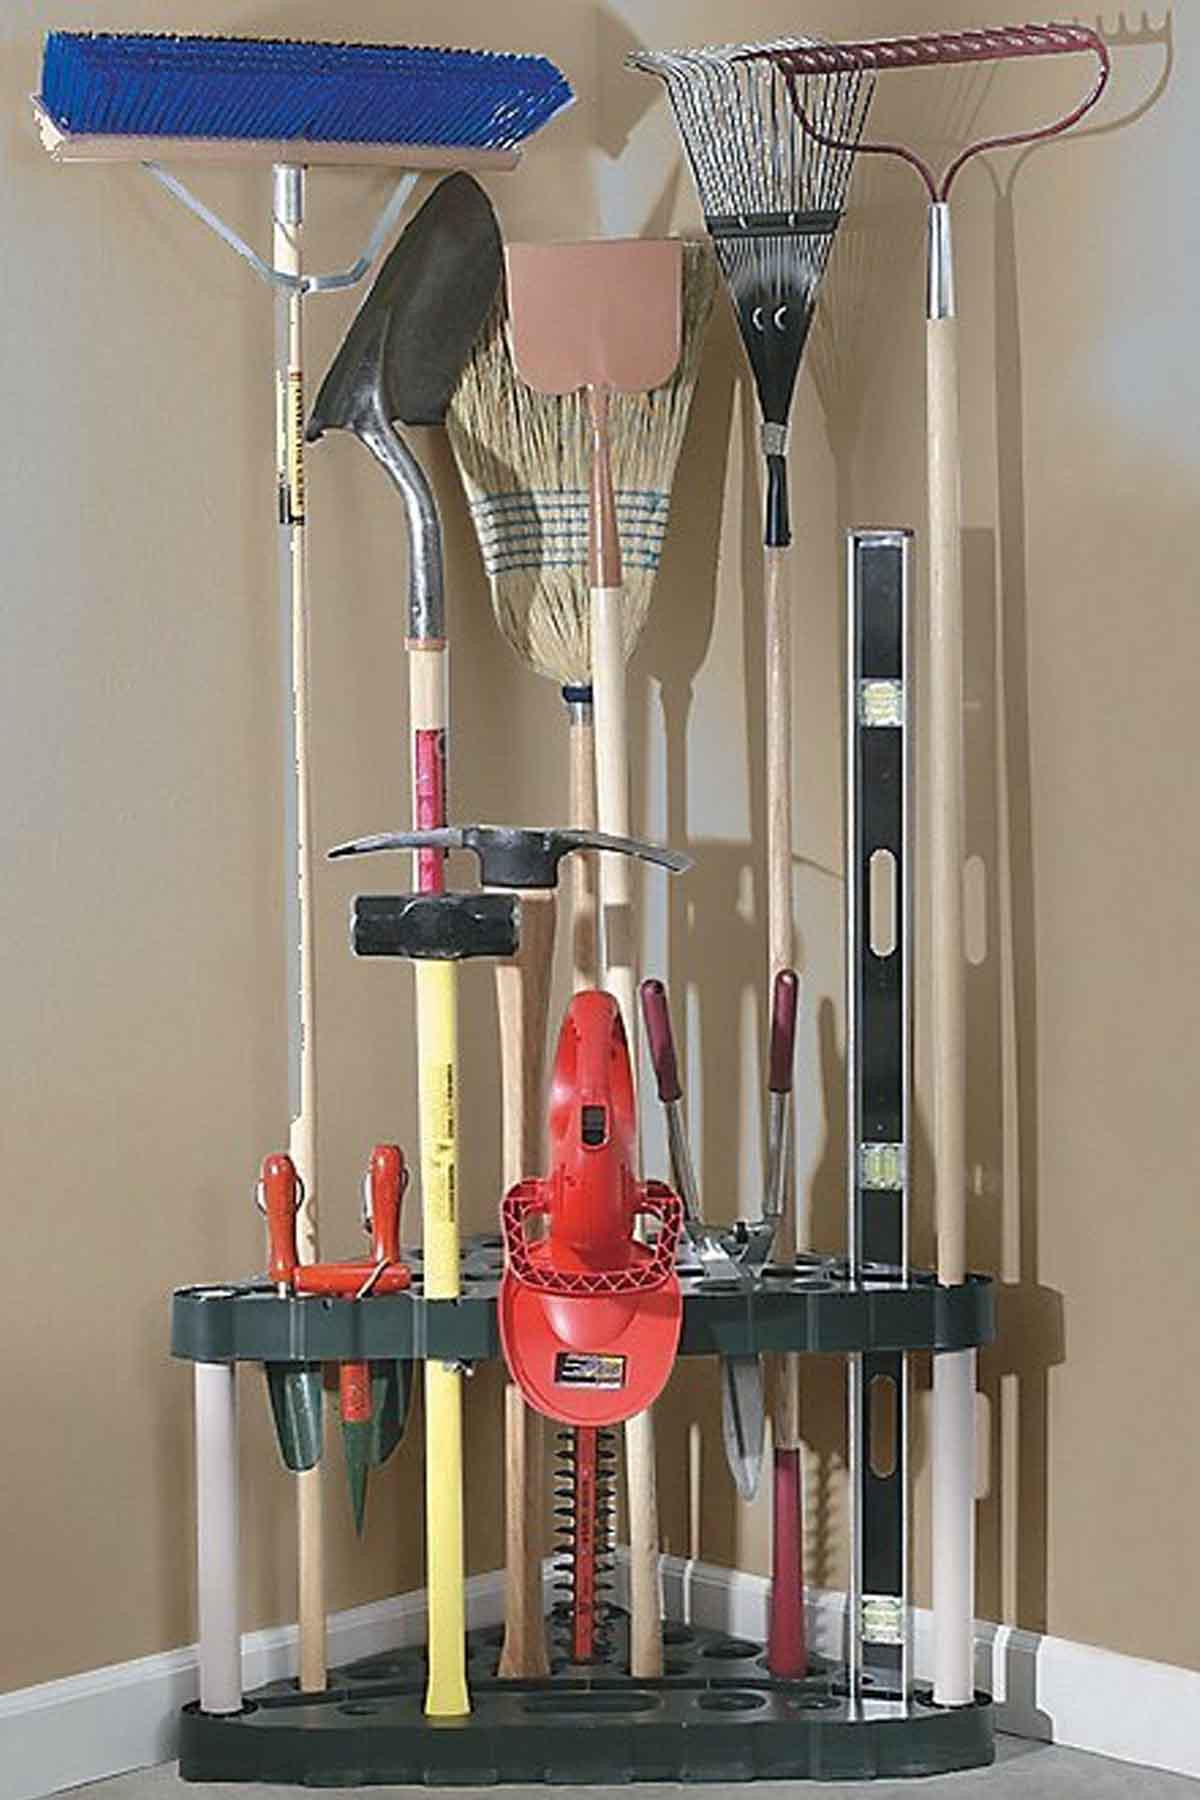 Garage Organization Ideas  24 Garage Organization Ideas Storage Solutions and Tips